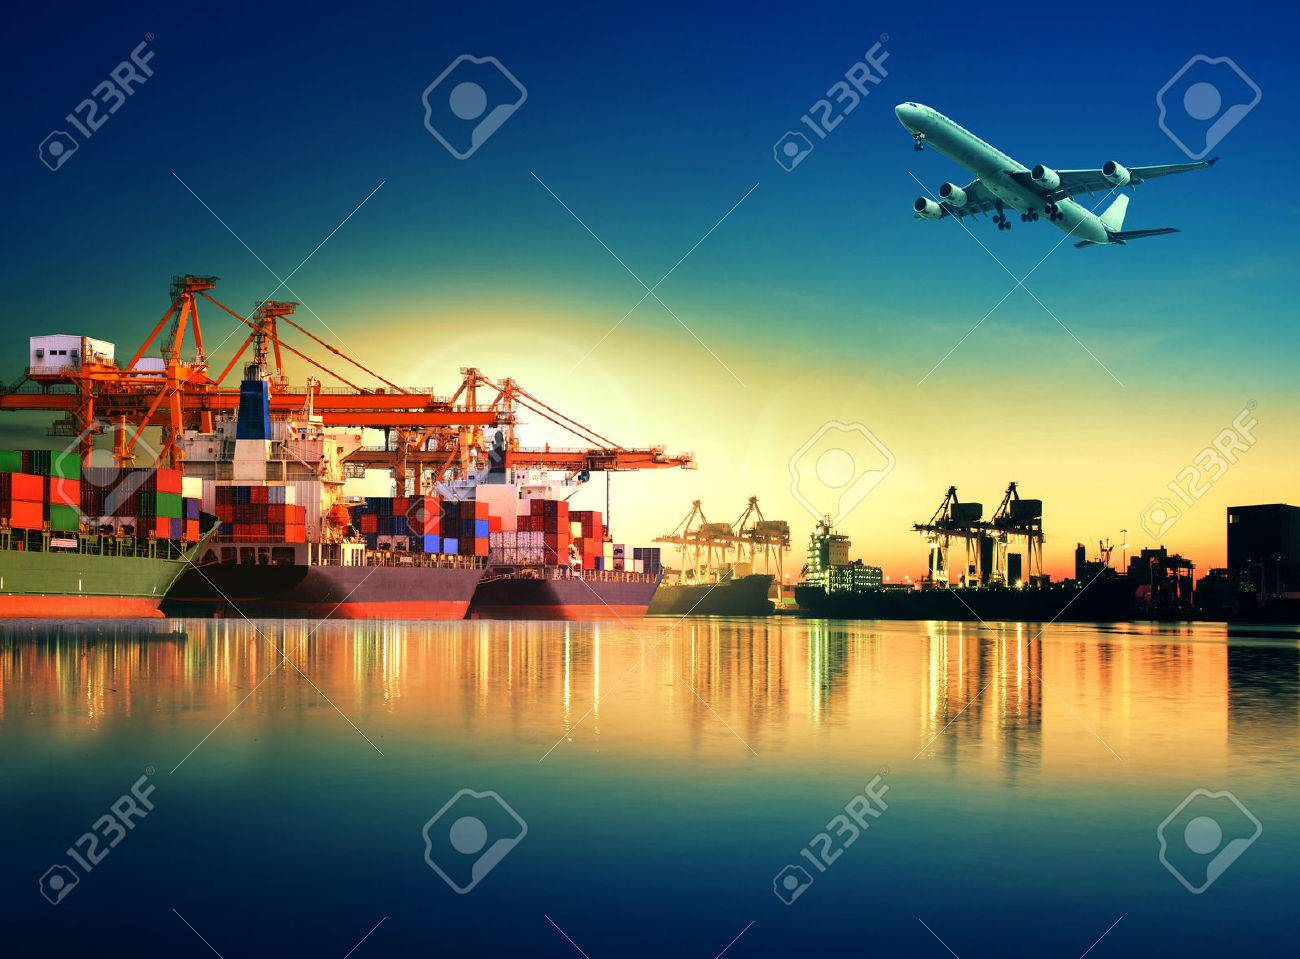 container ship in import,export port against beautiful morning light of loading ship yard use for freight and cargo shipping vessel transport Stock Photo - 44169758